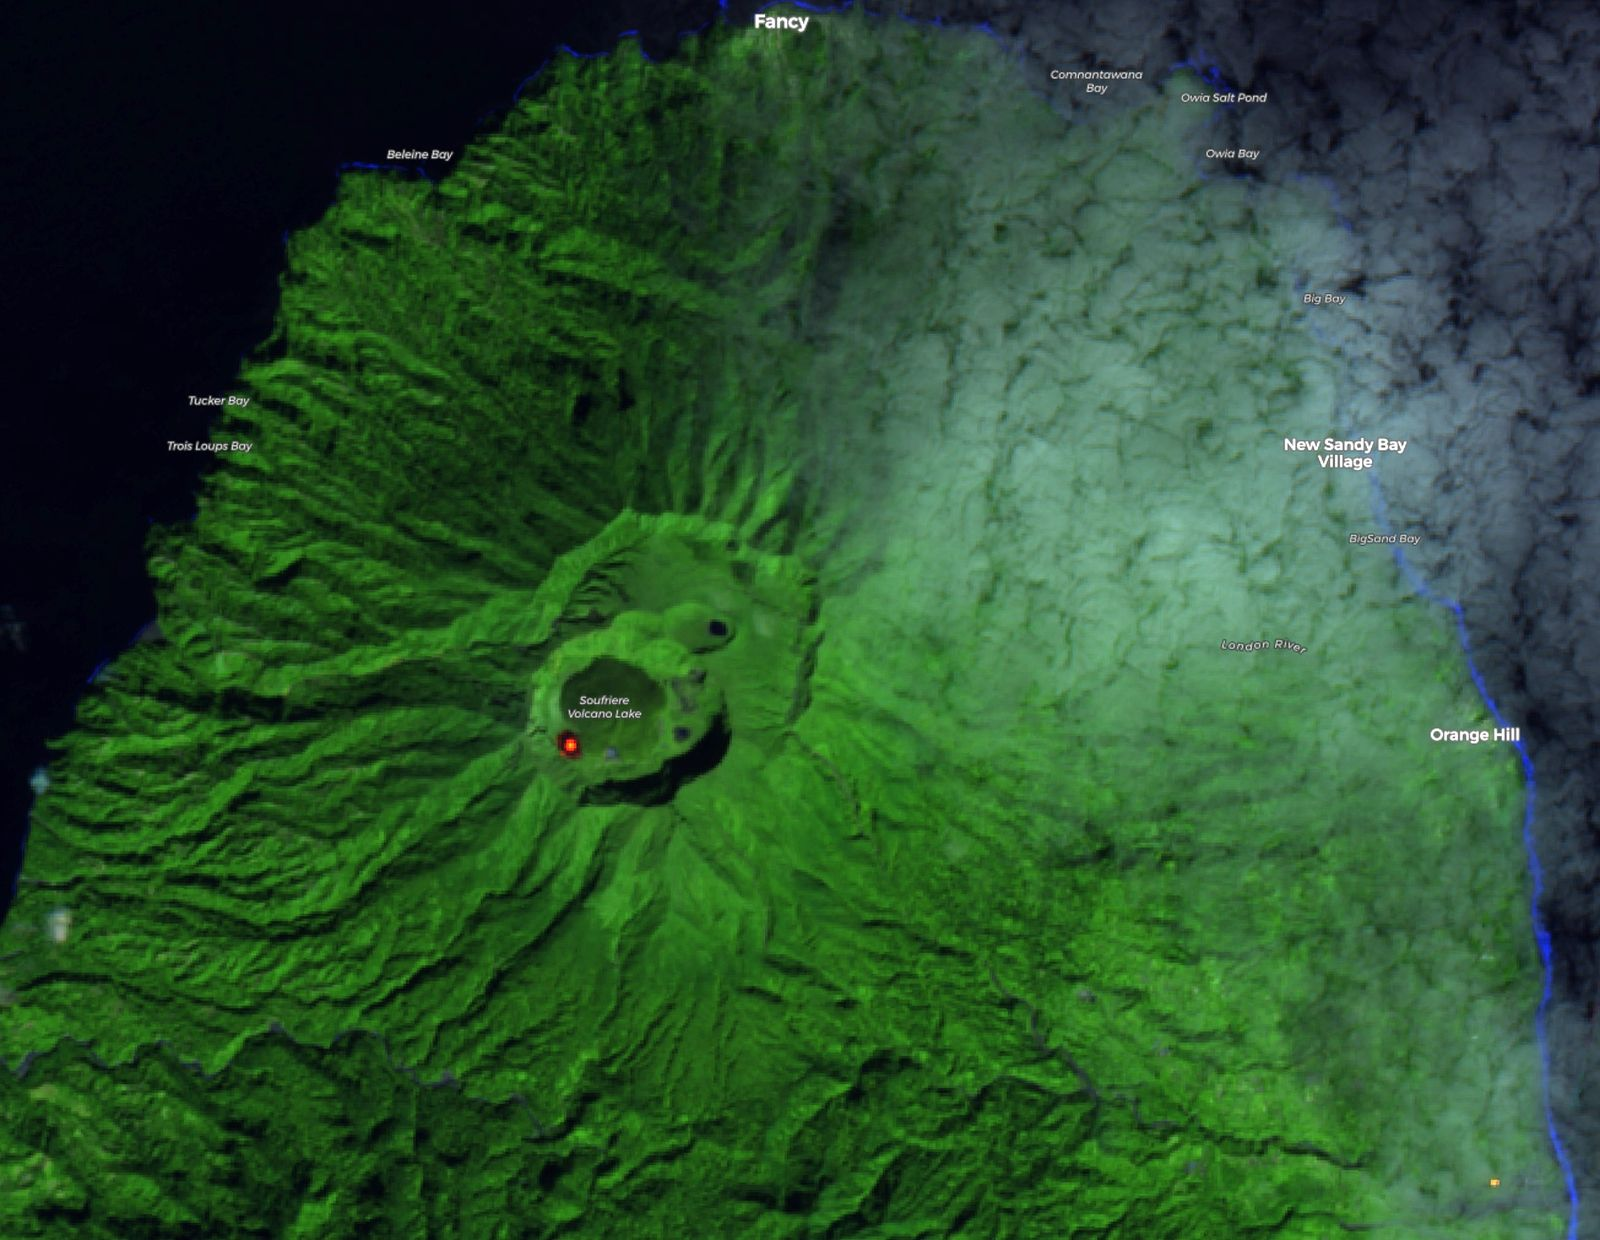 Soufrière st Vincent - glow of the dome and its location - image Sentinel-2 SWIR 03.01.2021 / Copernicus via S. Carn - one click to enlarge